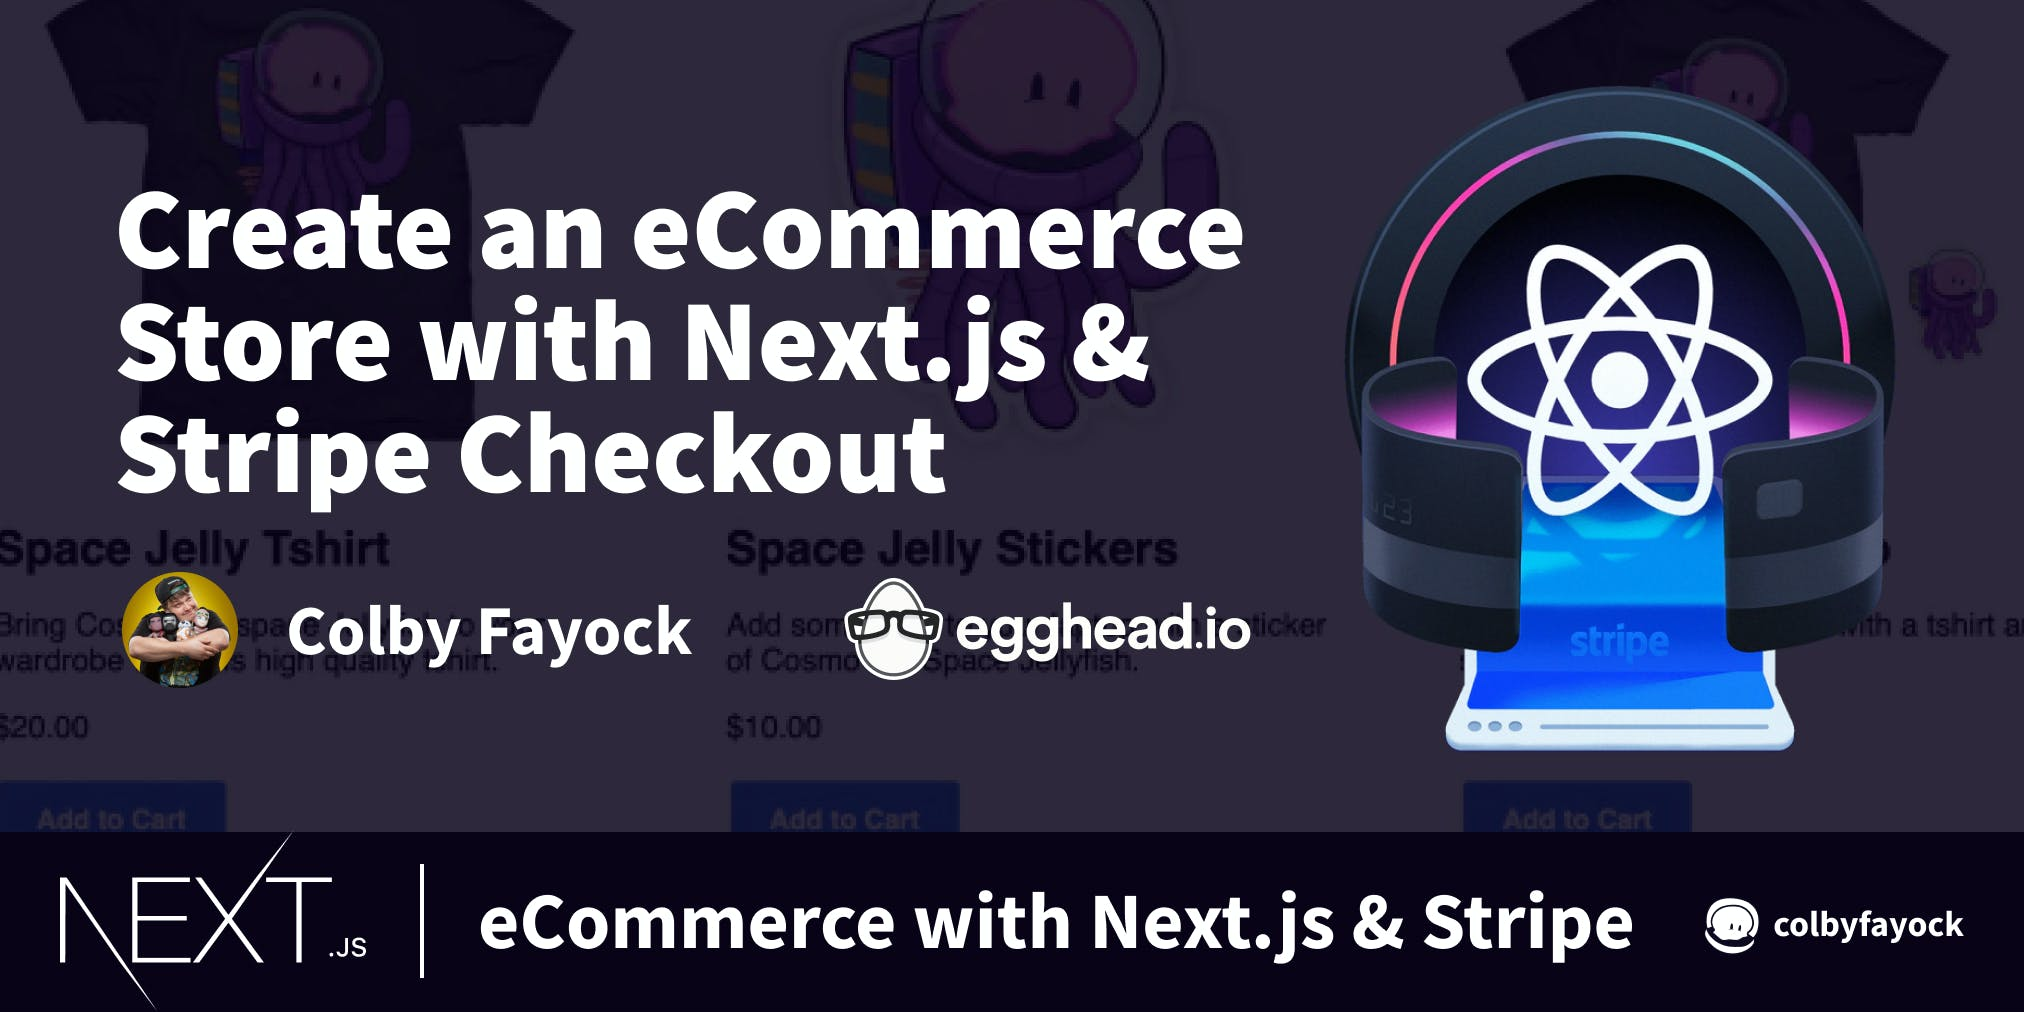 eCommerce with Next.js